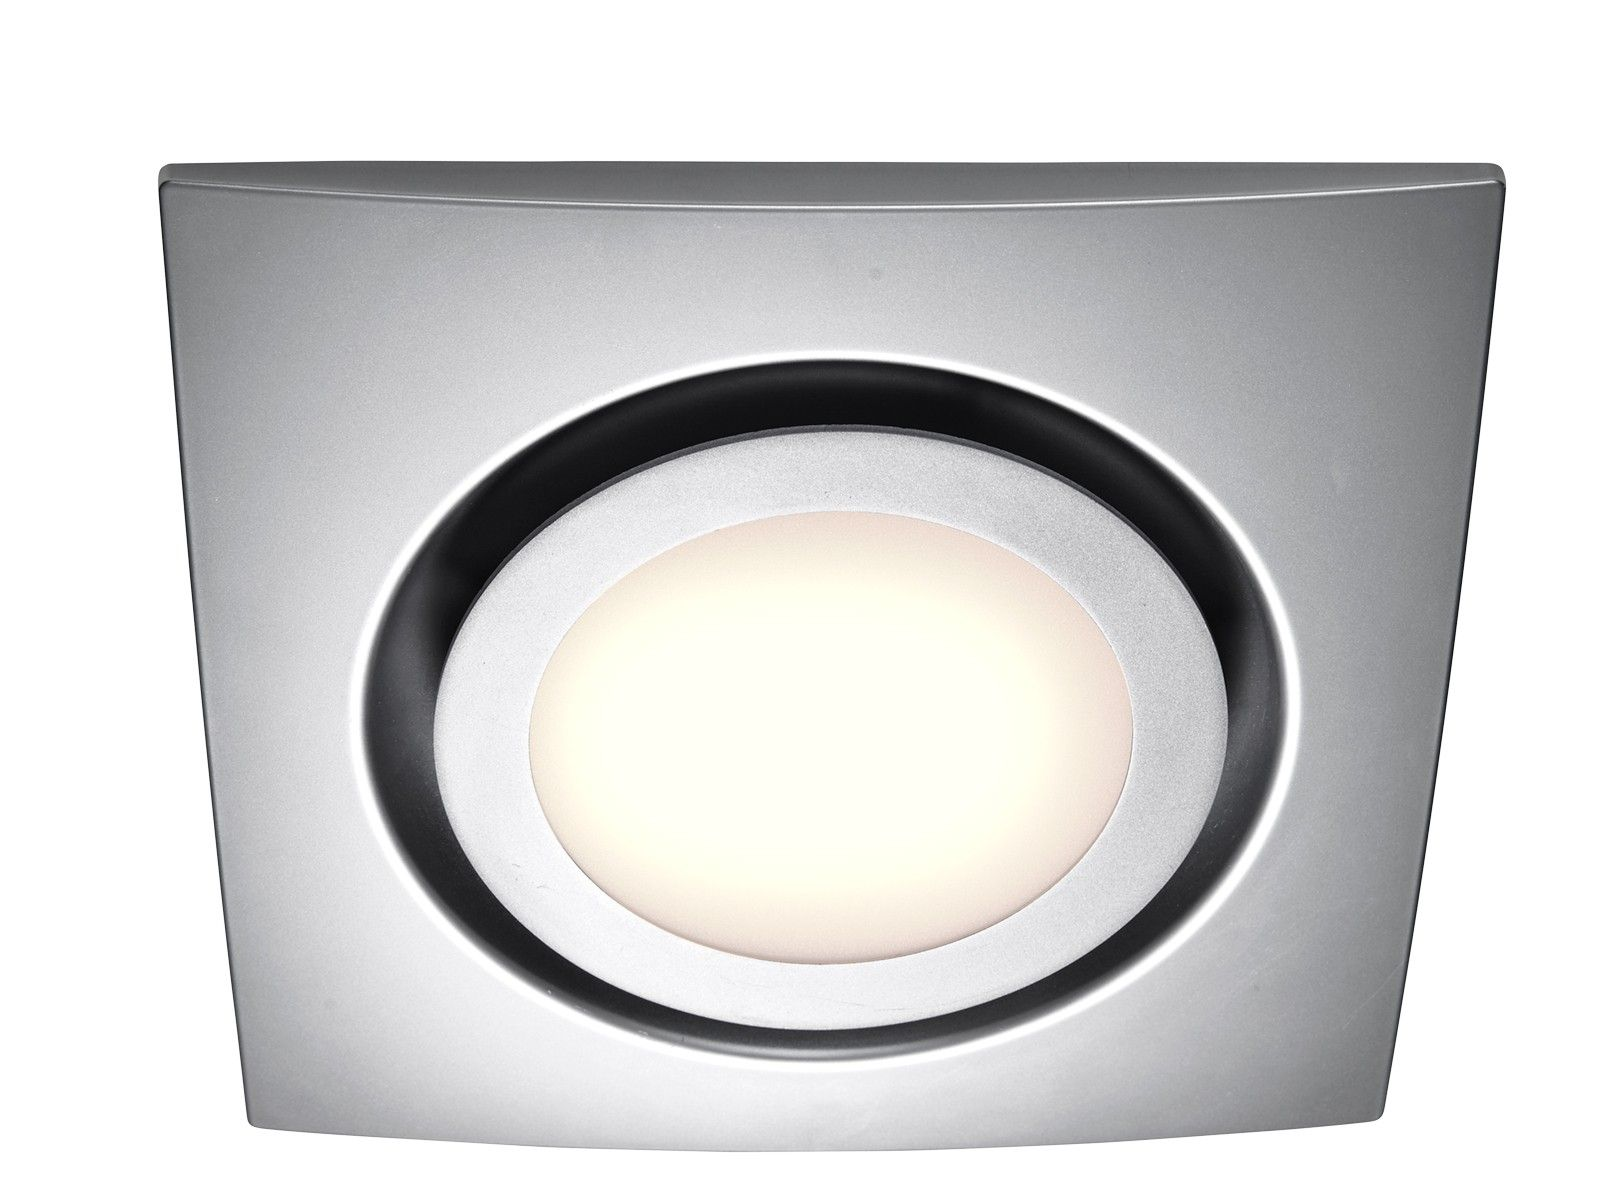 Bathroom heater light extractor fan bathroom design - Bathroom ceiling extractor fan with light ...